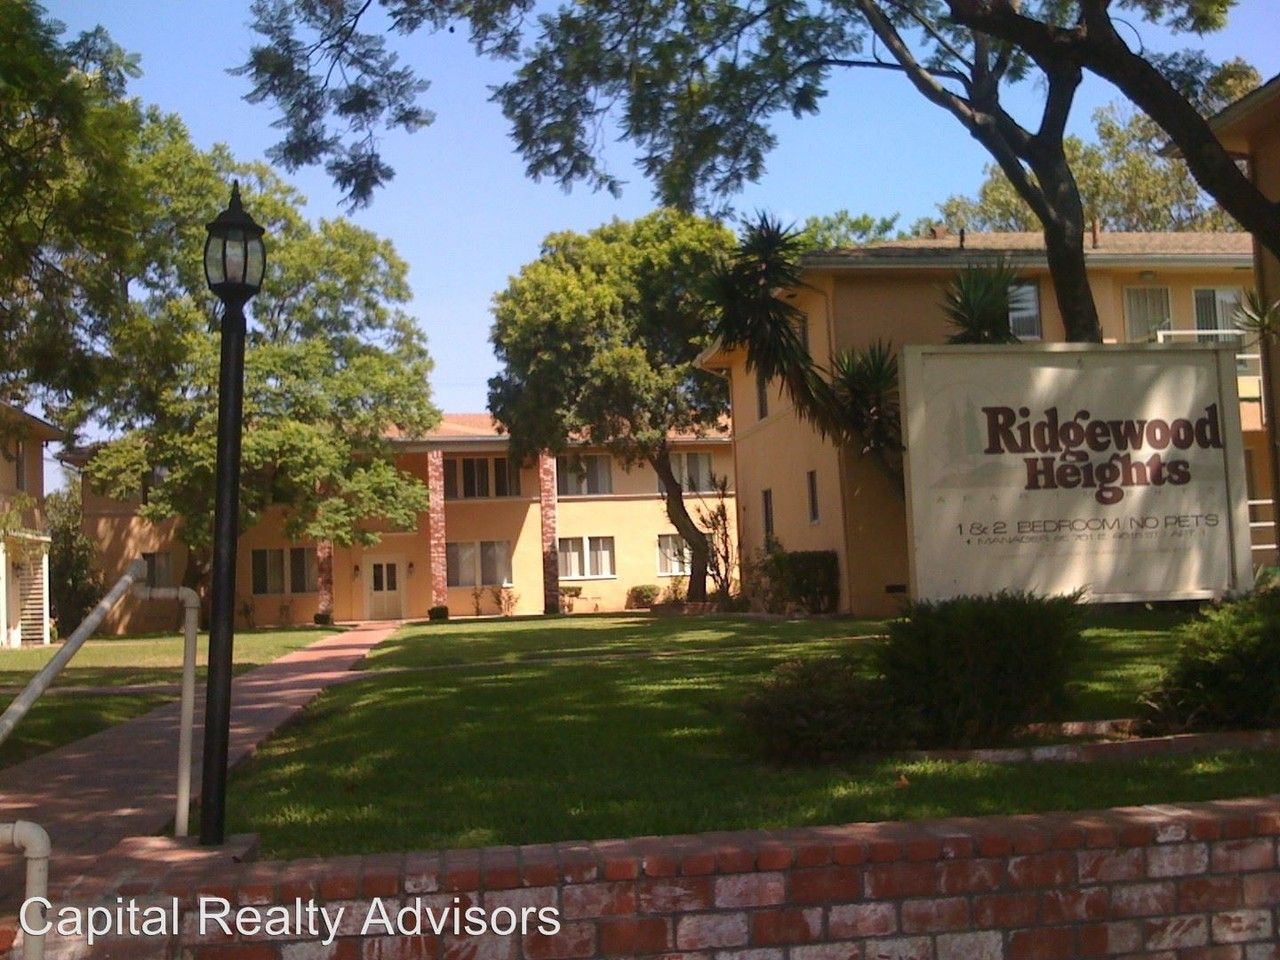 801 931 e 46th st apartments for rent 801 e 46th st - One bedroom apartments in bixby knolls ...